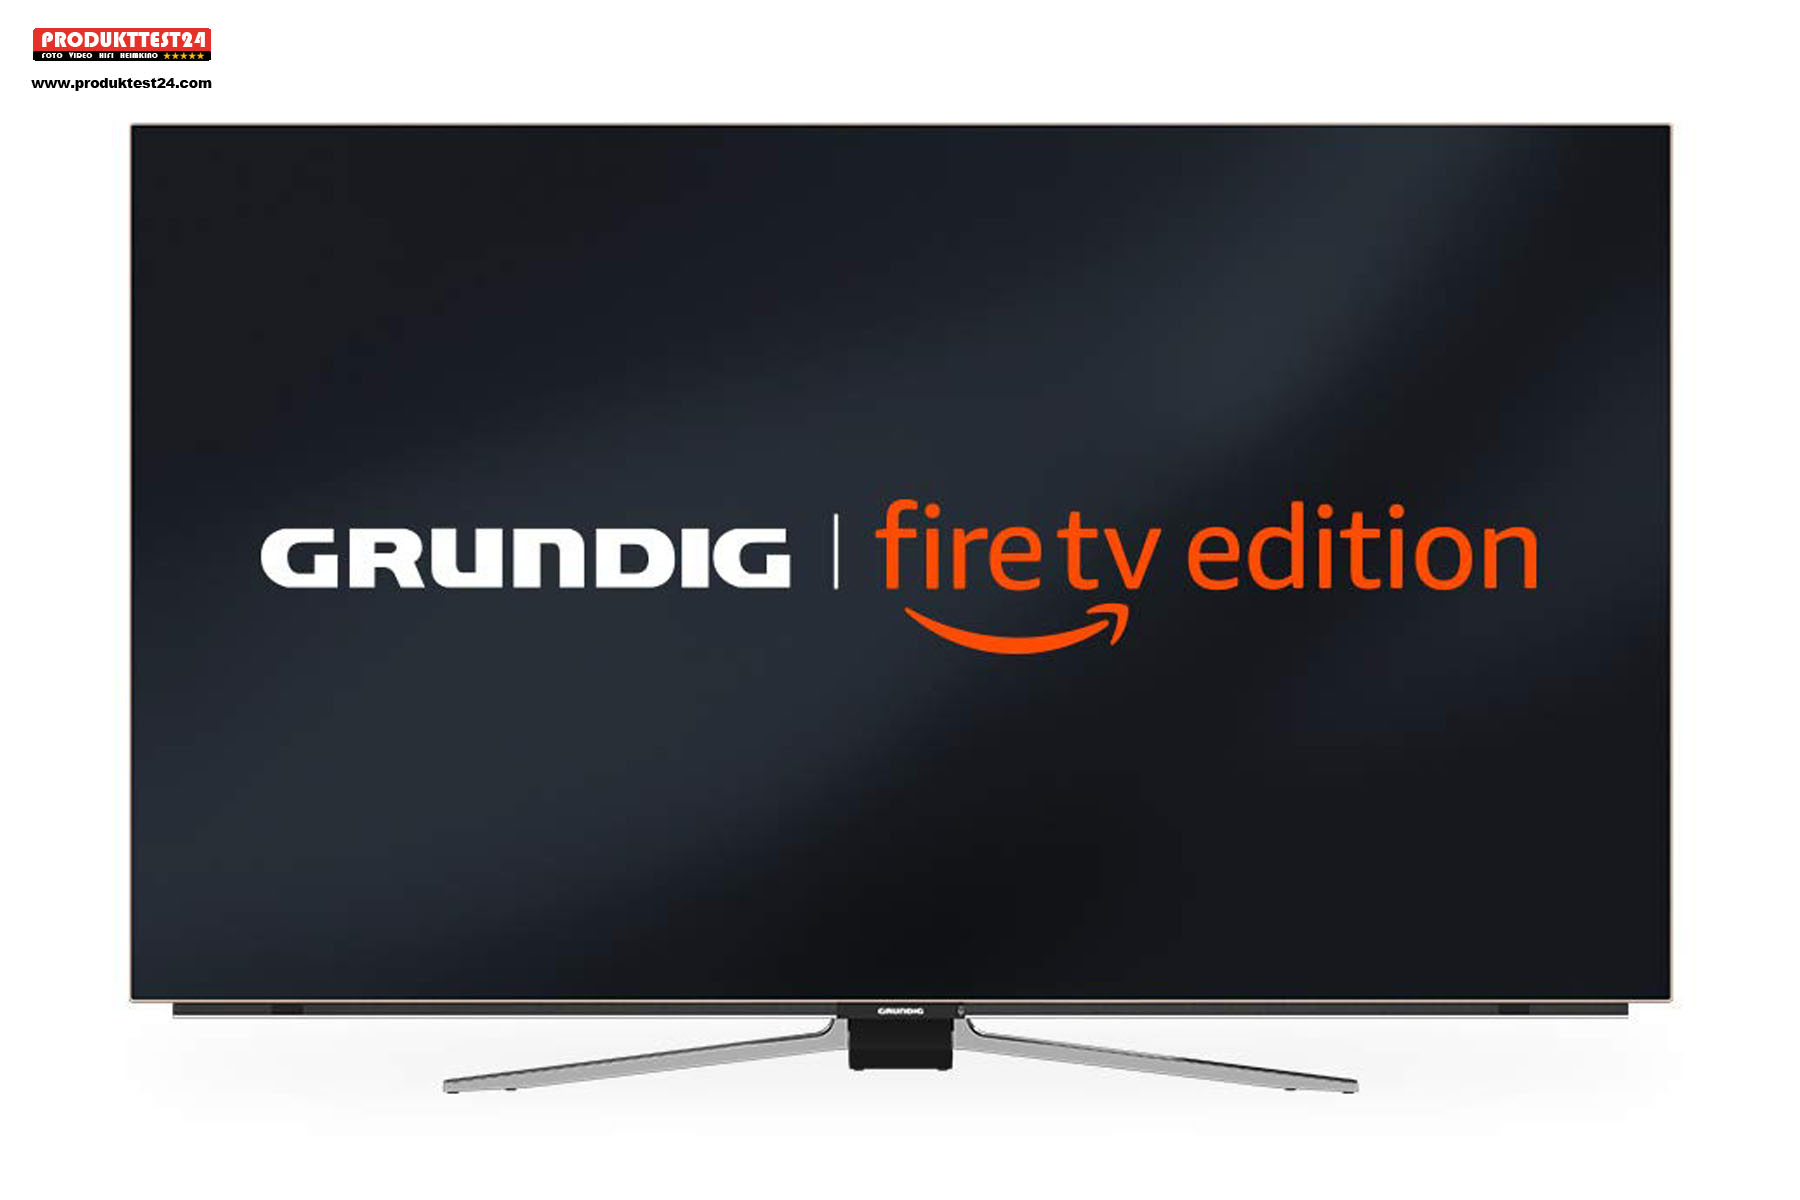 Grundig 55 VLO 8589 Fire TV Edition im test